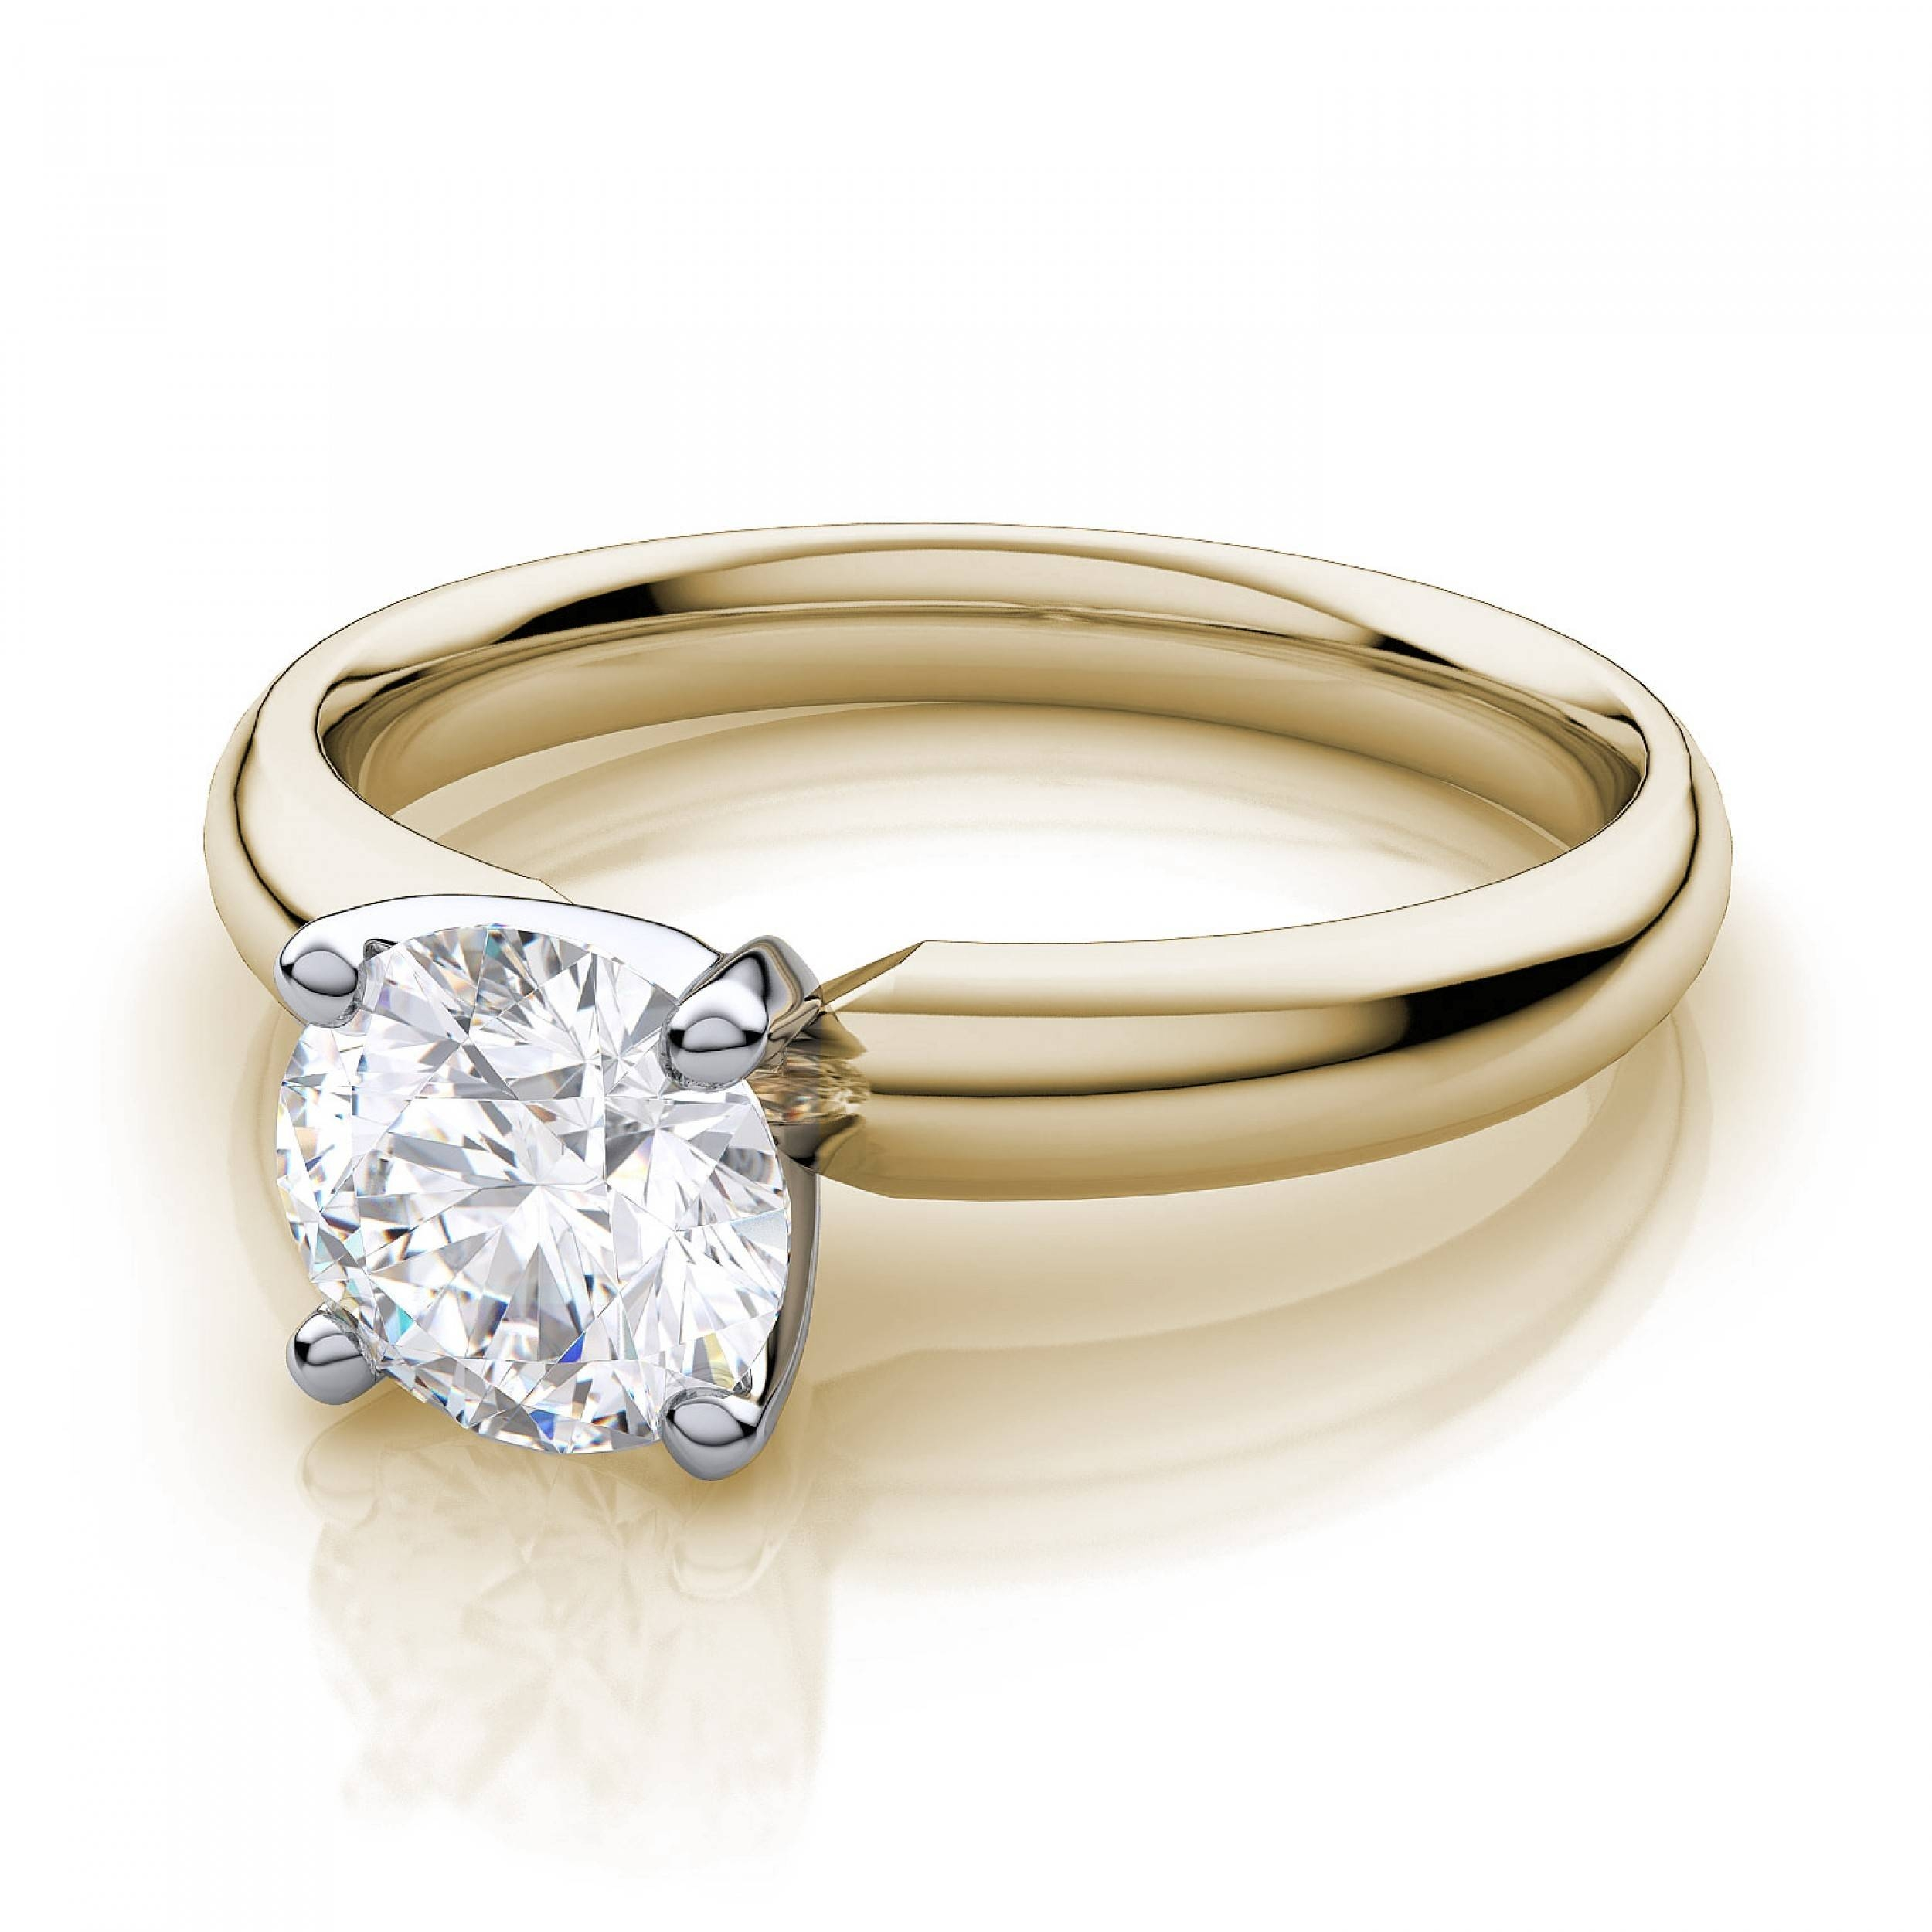 Classic Round Diamond Solitaire Engagement Ring In 18K Yellow Gold Regarding Engagement Rings 18K Yellow Gold (View 4 of 15)